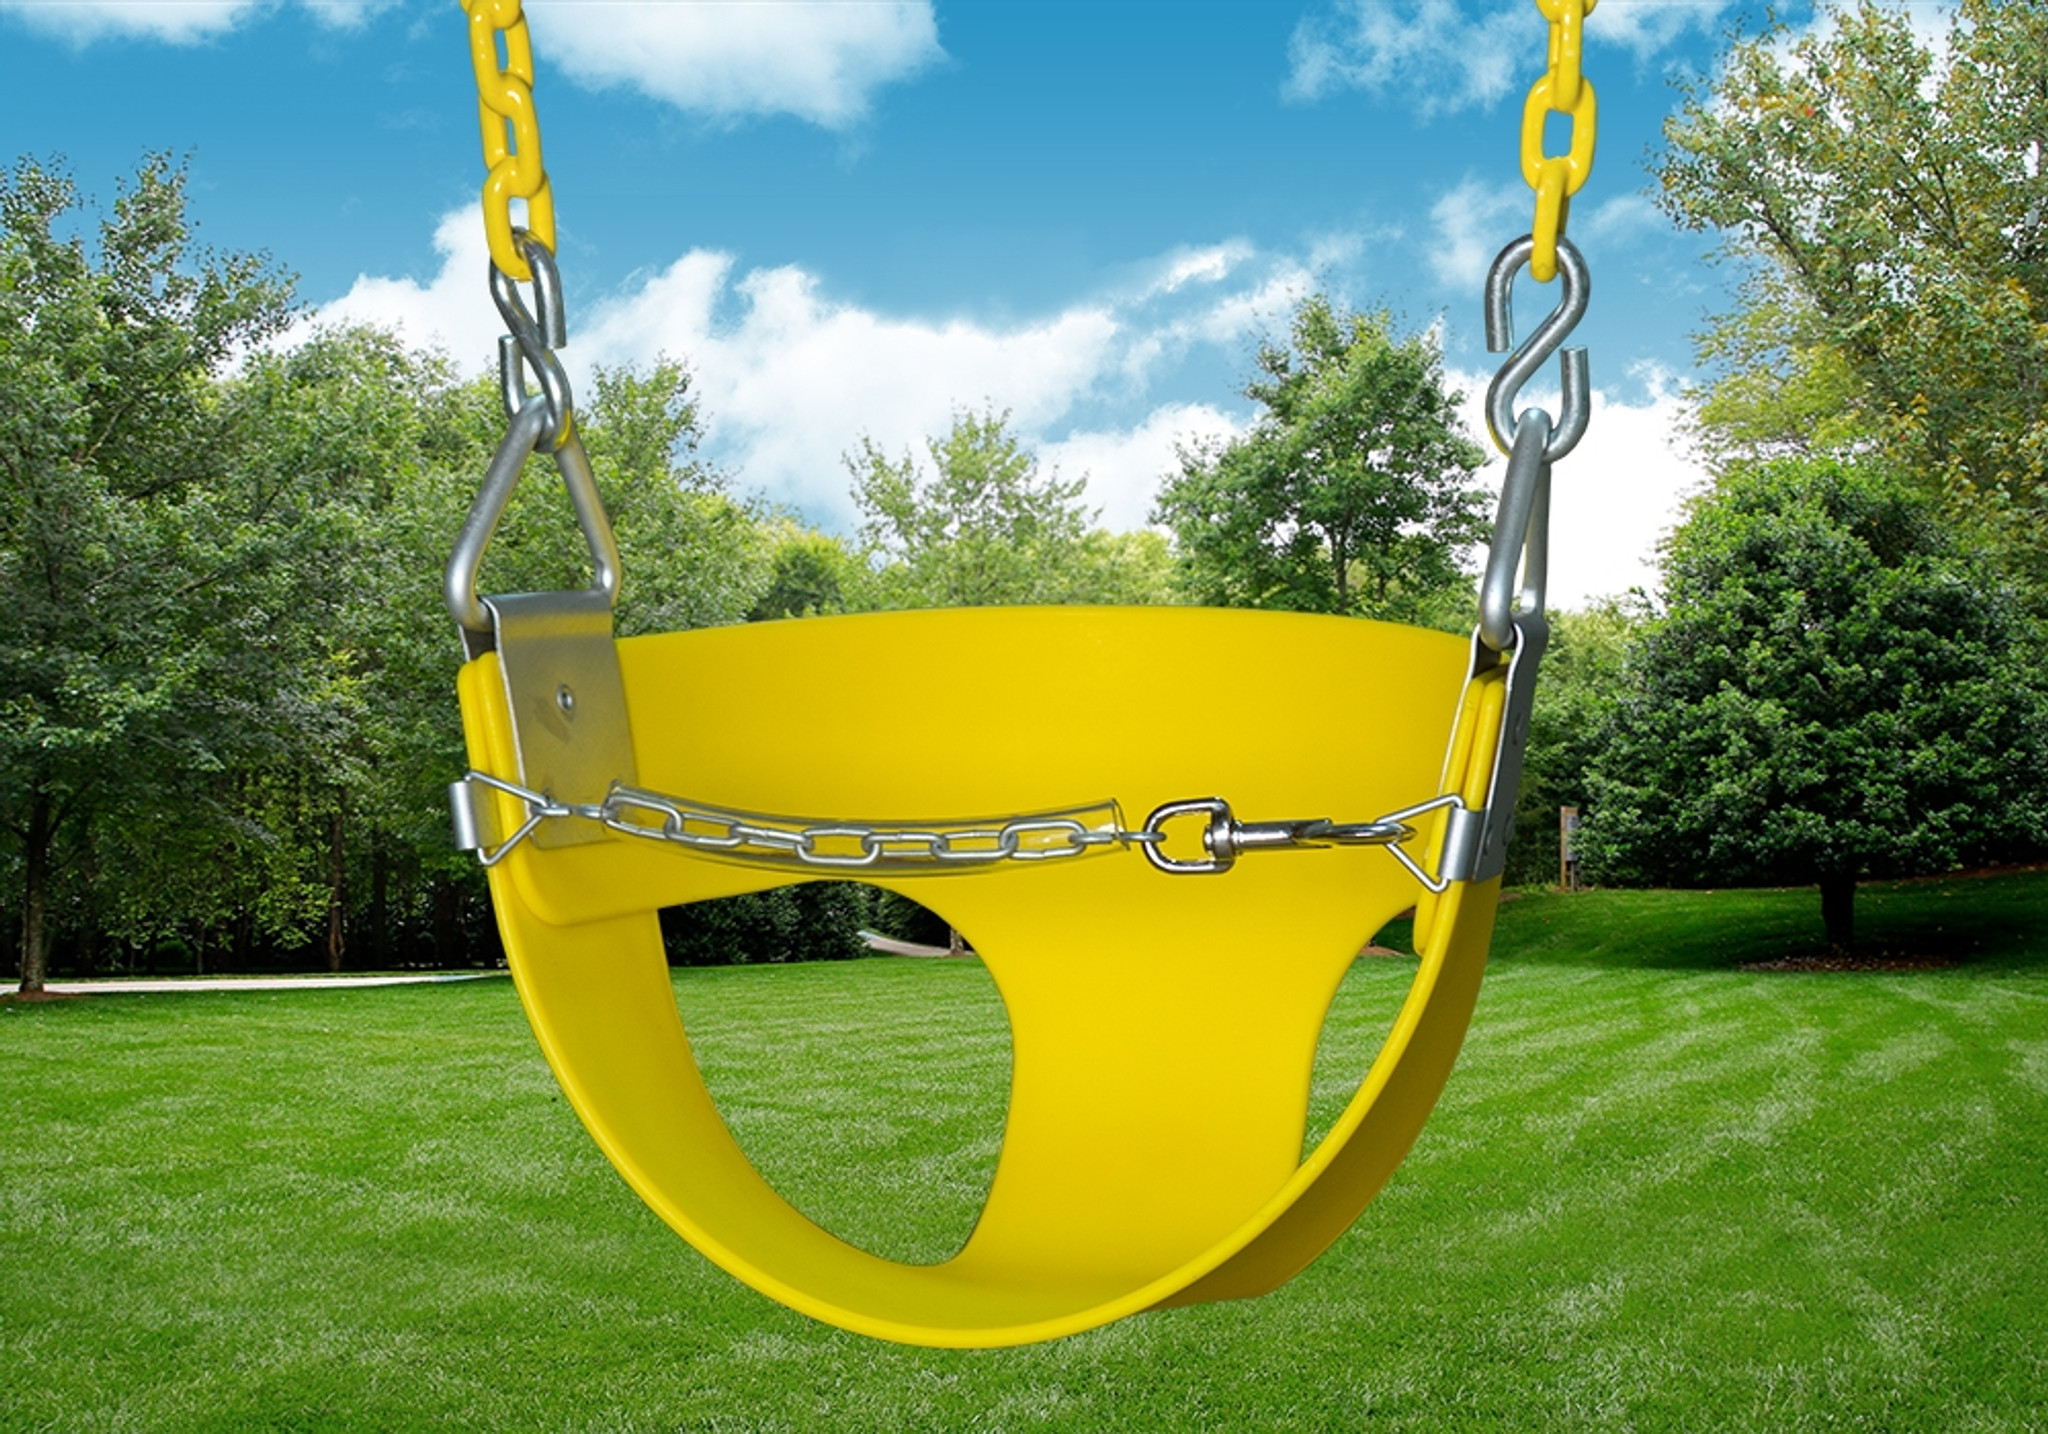 Outdoor Shot of yellow Half Bucket Toddler Swing from PlayNation.